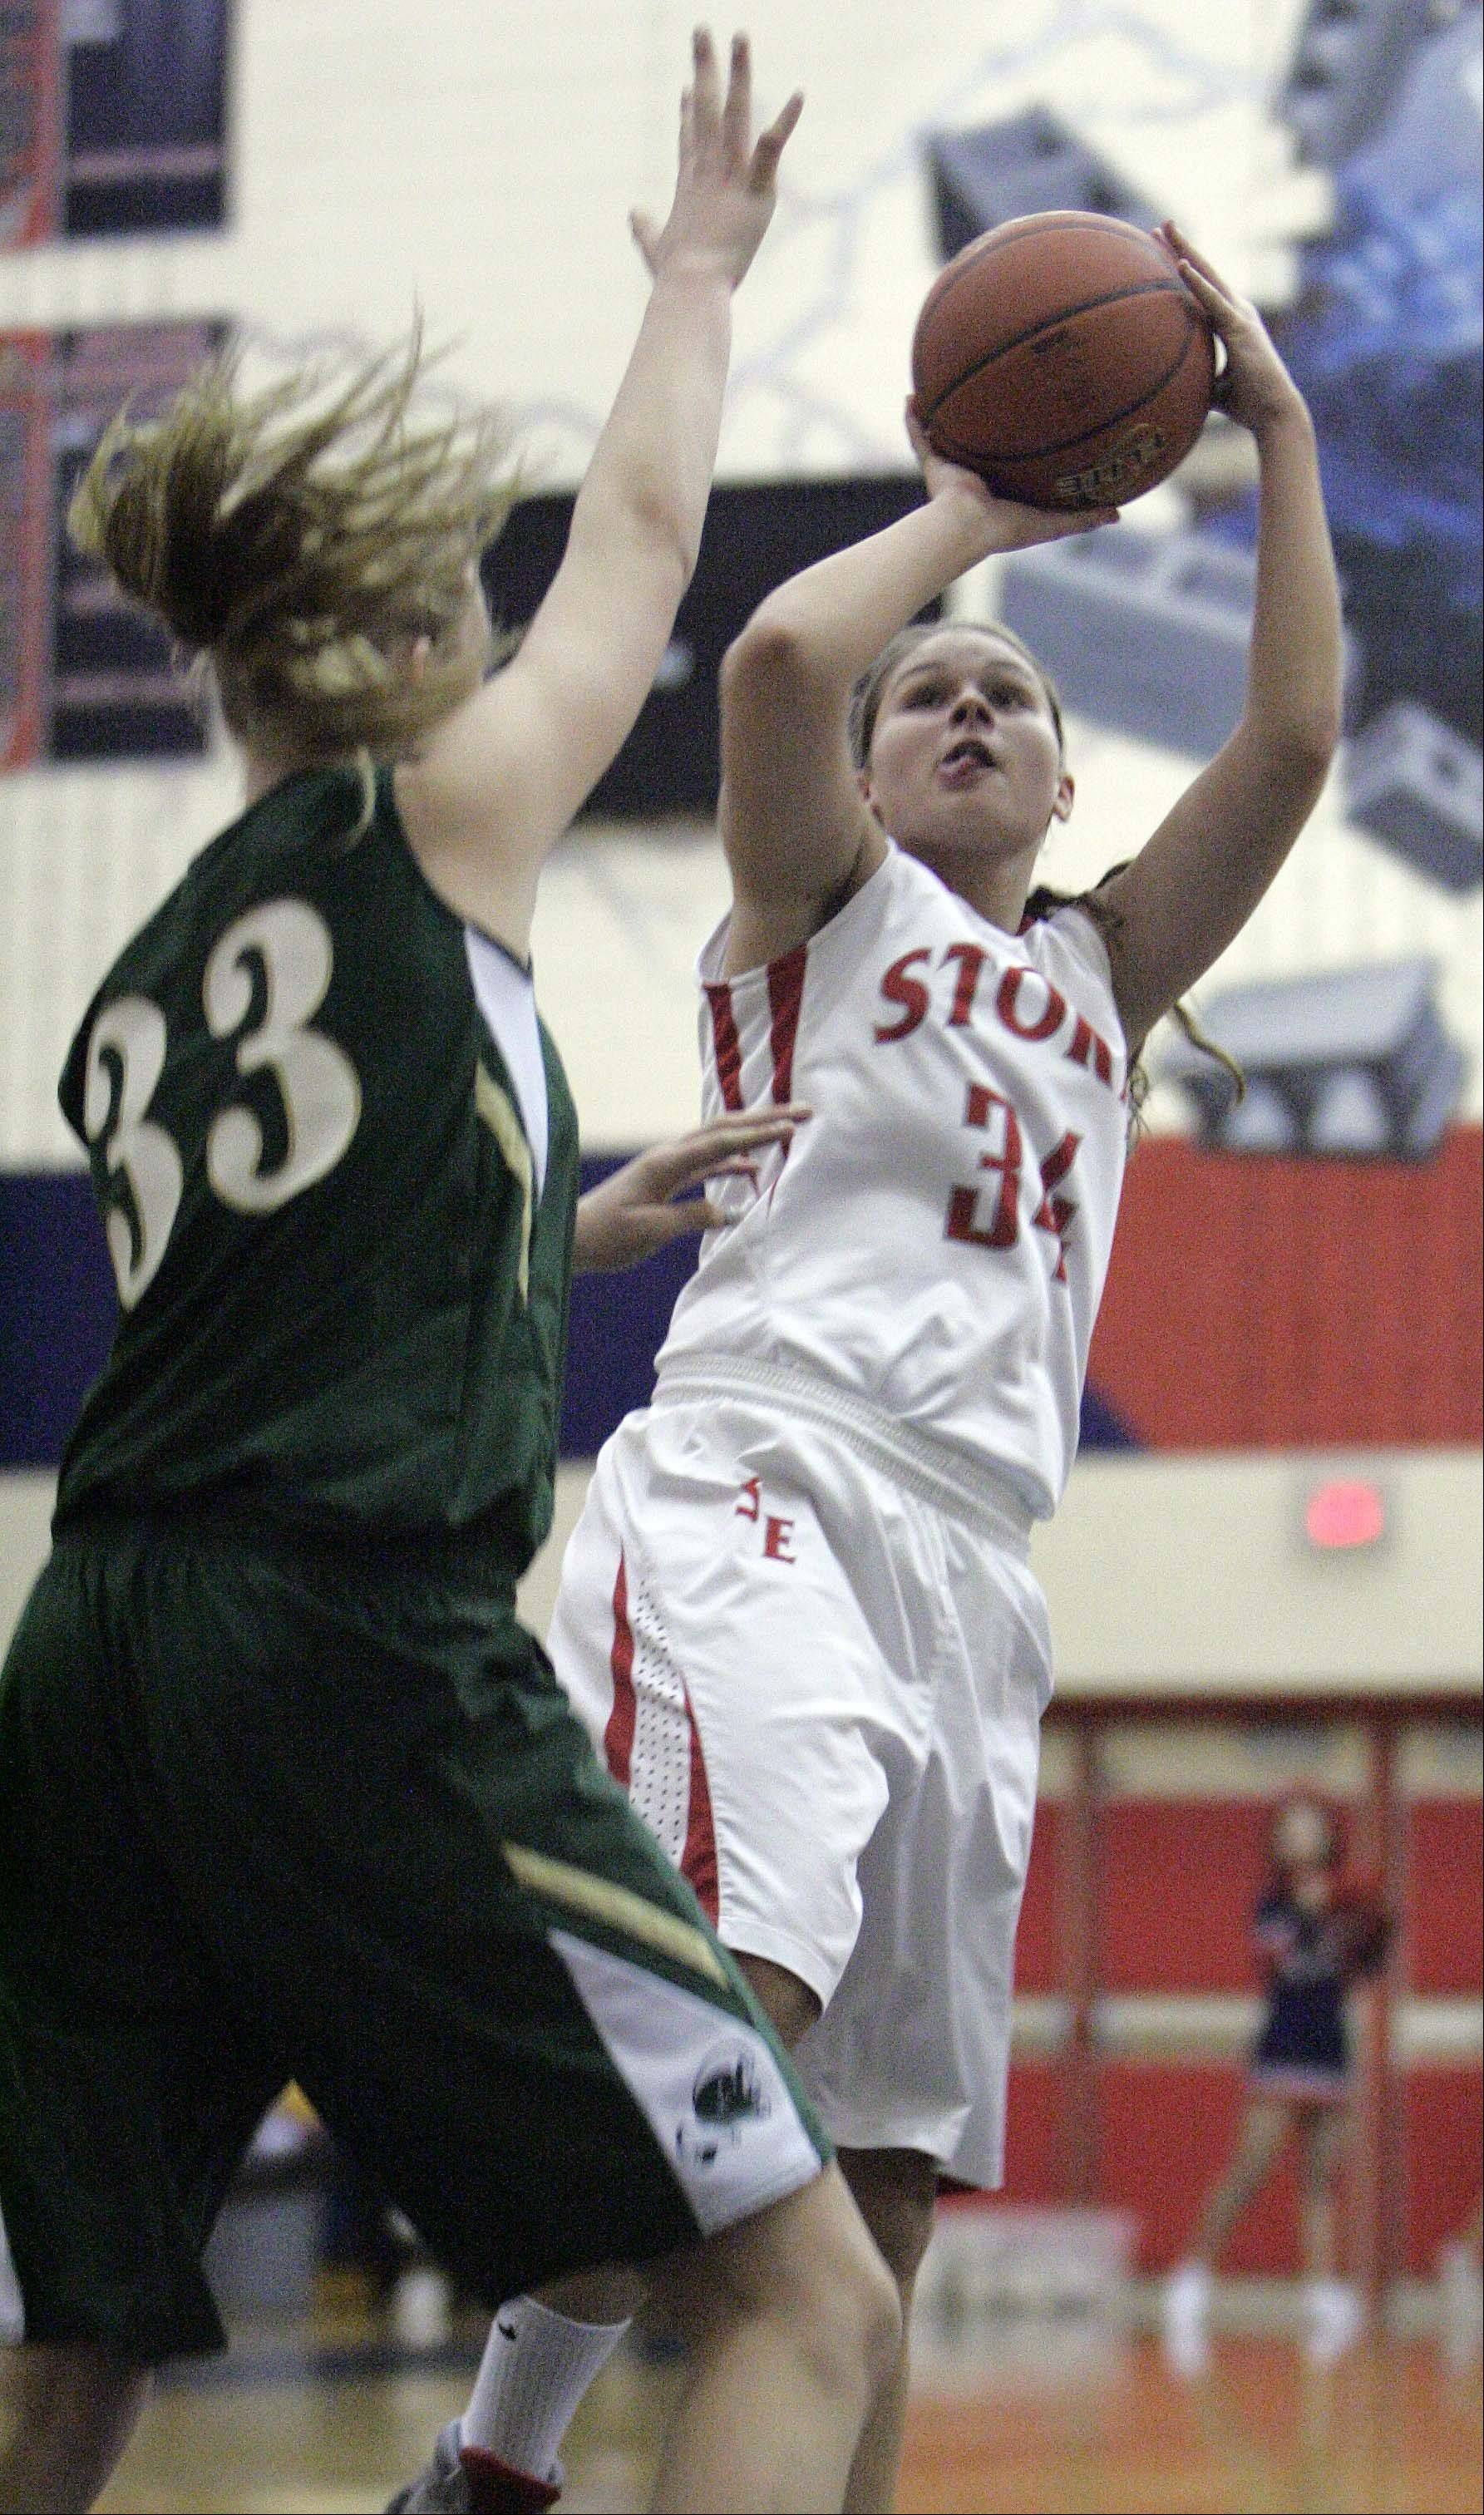 St. Edward's Cecile Rapp, 33, tries to stop South Elgin's Amanda Behles, 34, during girls basketball Saturday January 5, 2013